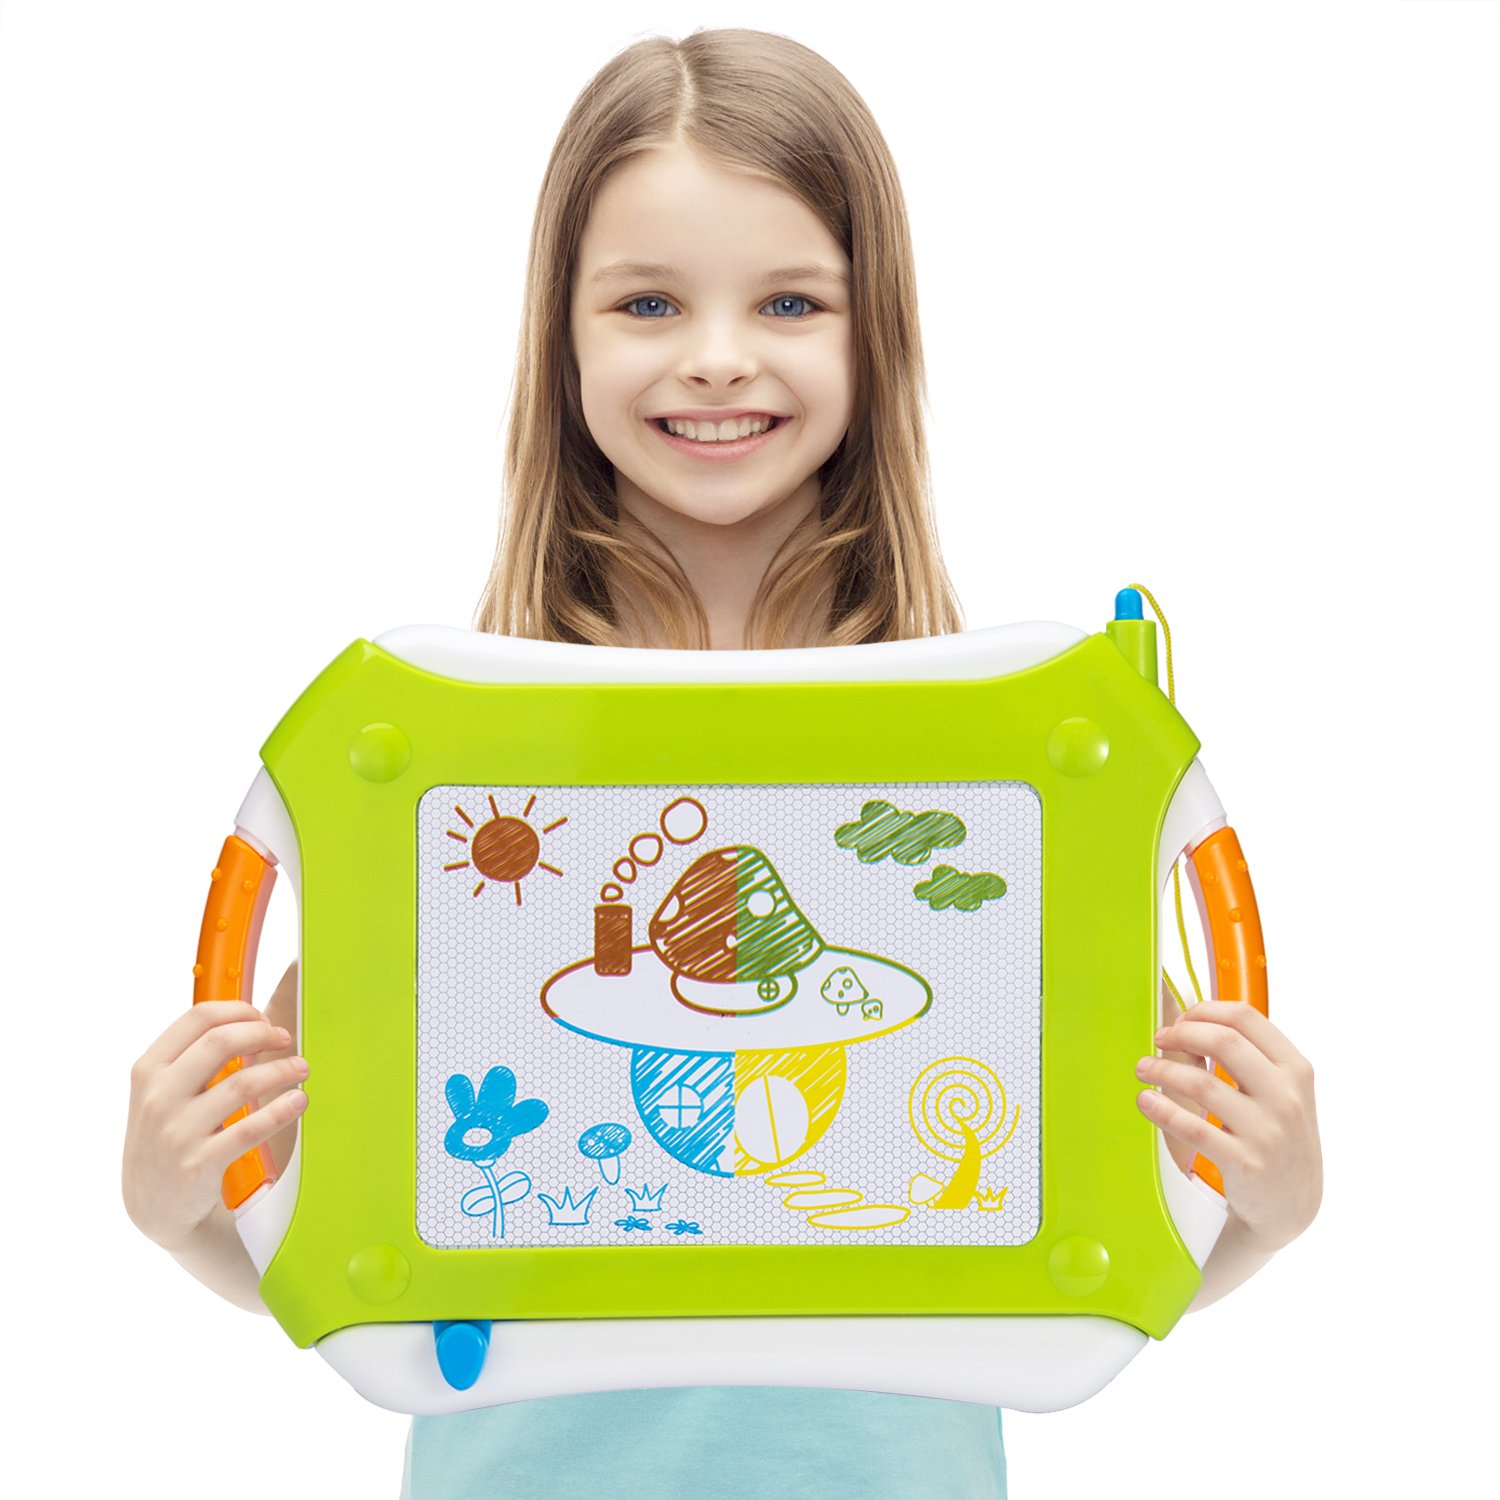 Vamslove Magnetic Drawing Board, Kids Toys Erasable Magna Doodle Pad Colorful Travel Writing Sketching Board - Learning Educational Gifts Toys Kids Boys Girls Toddlers Age 3 4 5 6 7 + Years Old